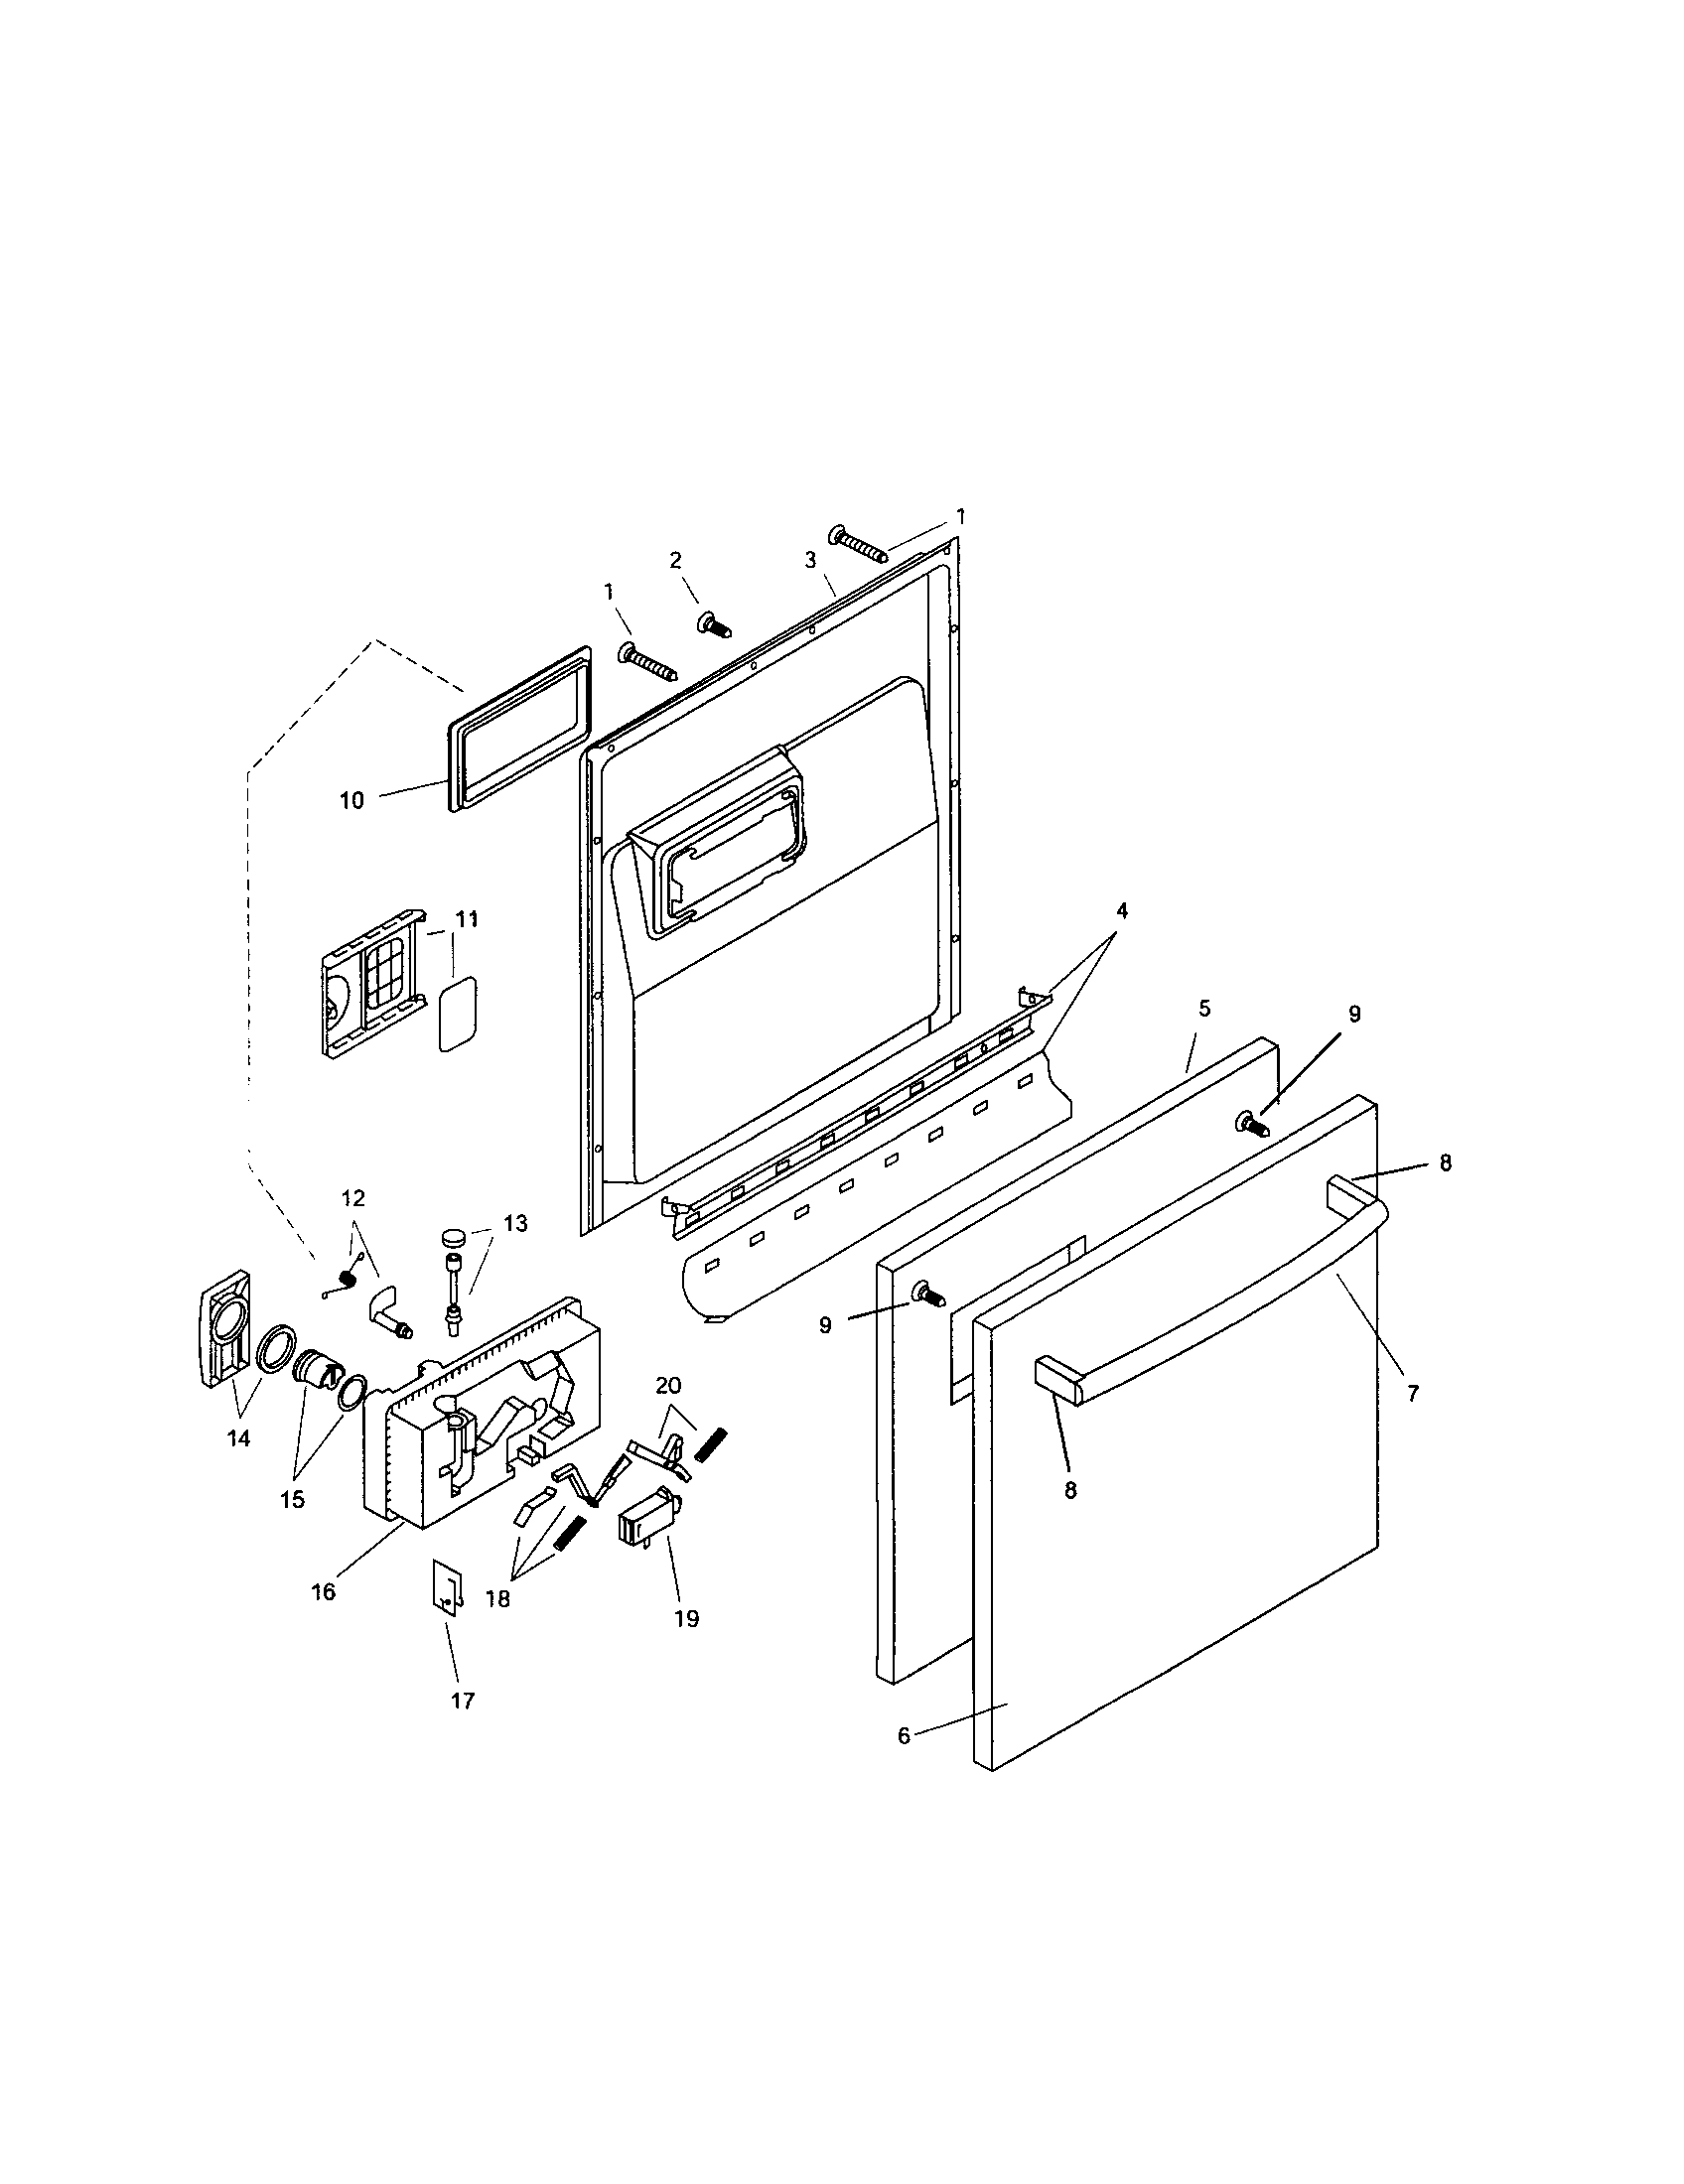 Bosch Dishwasher Parts: Bosch Dishwasher Parts 51